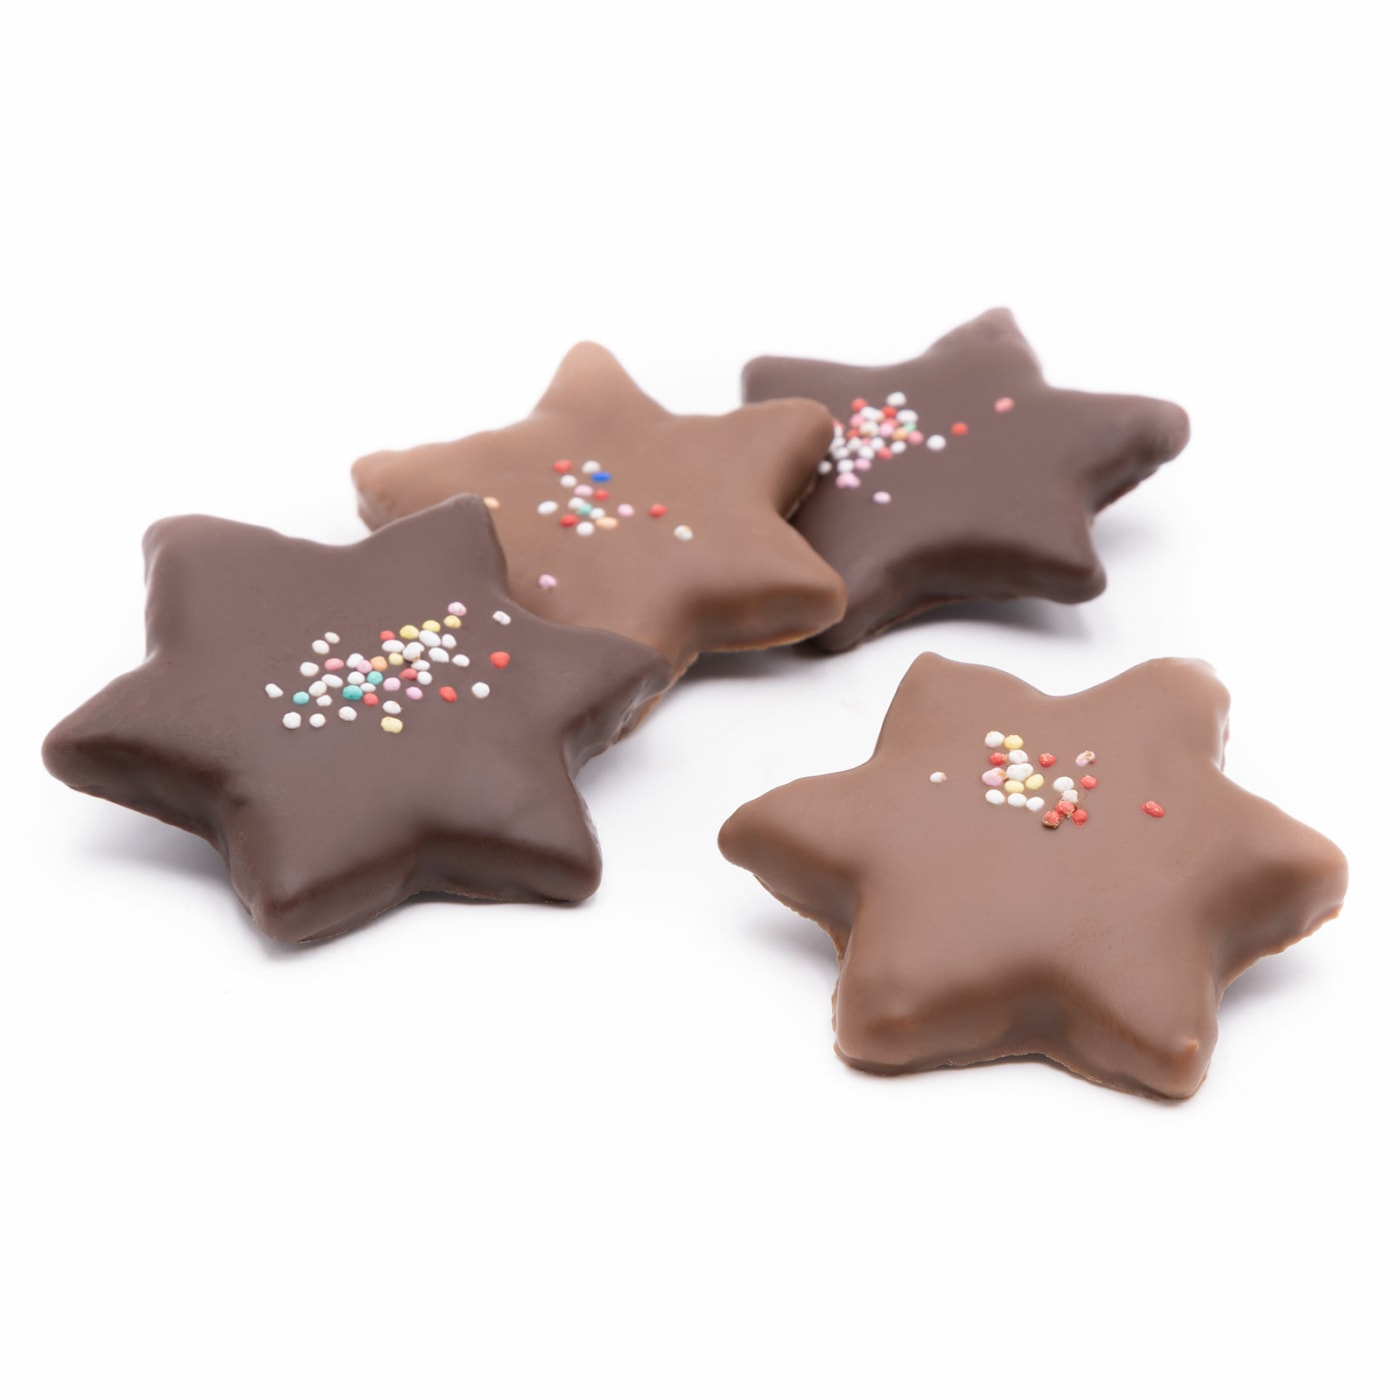 chocolate stars - dipped in chocolate